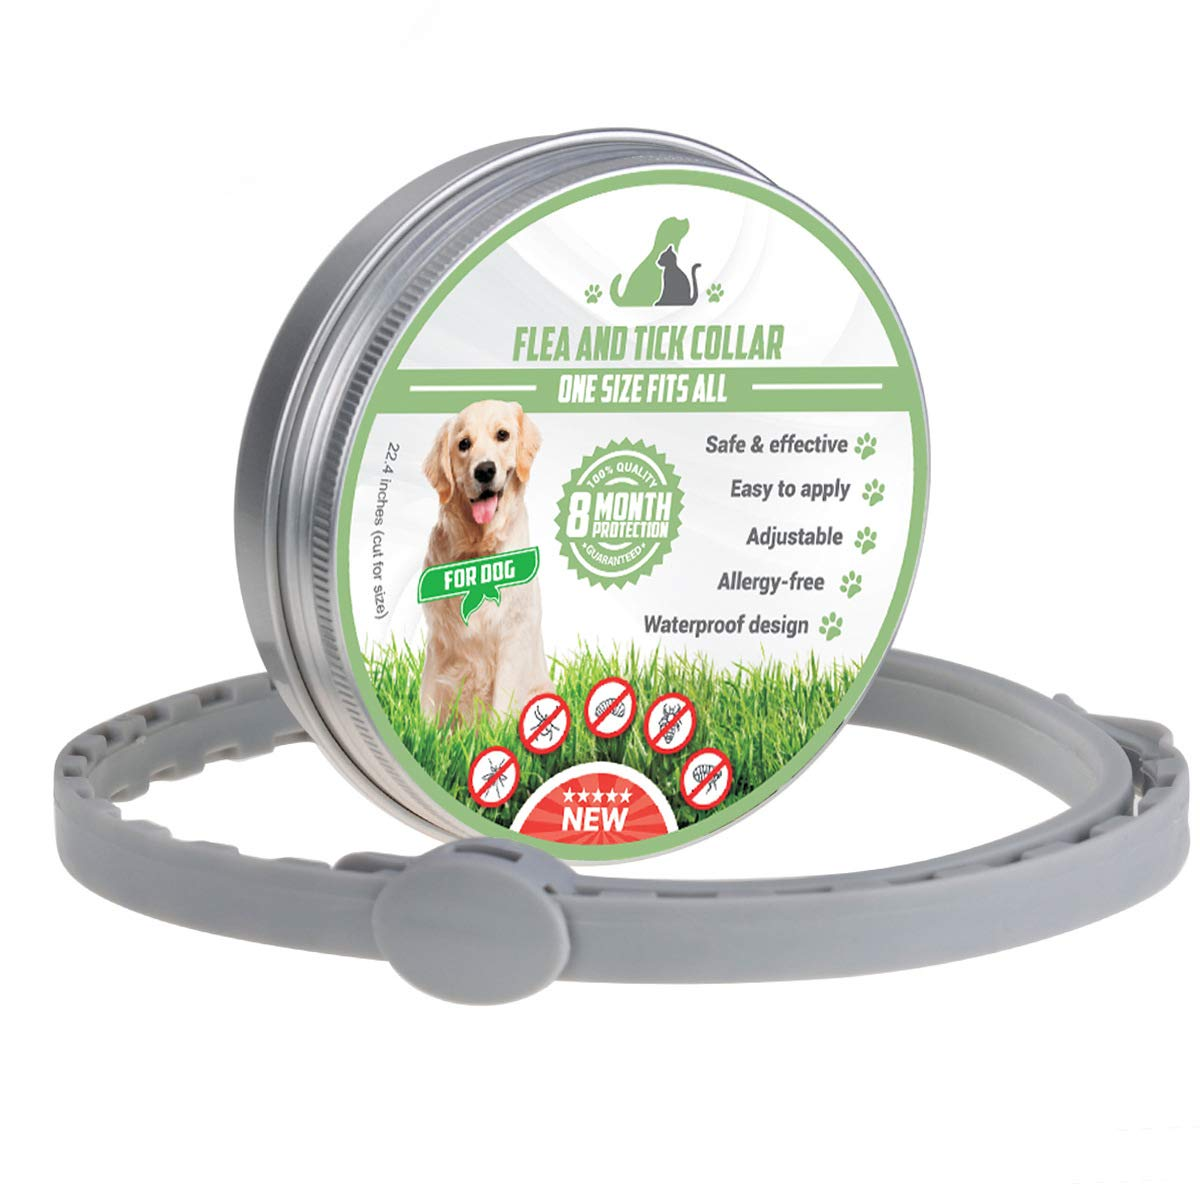 ZJH Flea and Tick Prevention Collar, Waterproof, Adjustable and Natural Flea Collar Prevention Essential Oil for Pets Fits All Dogs and Cats